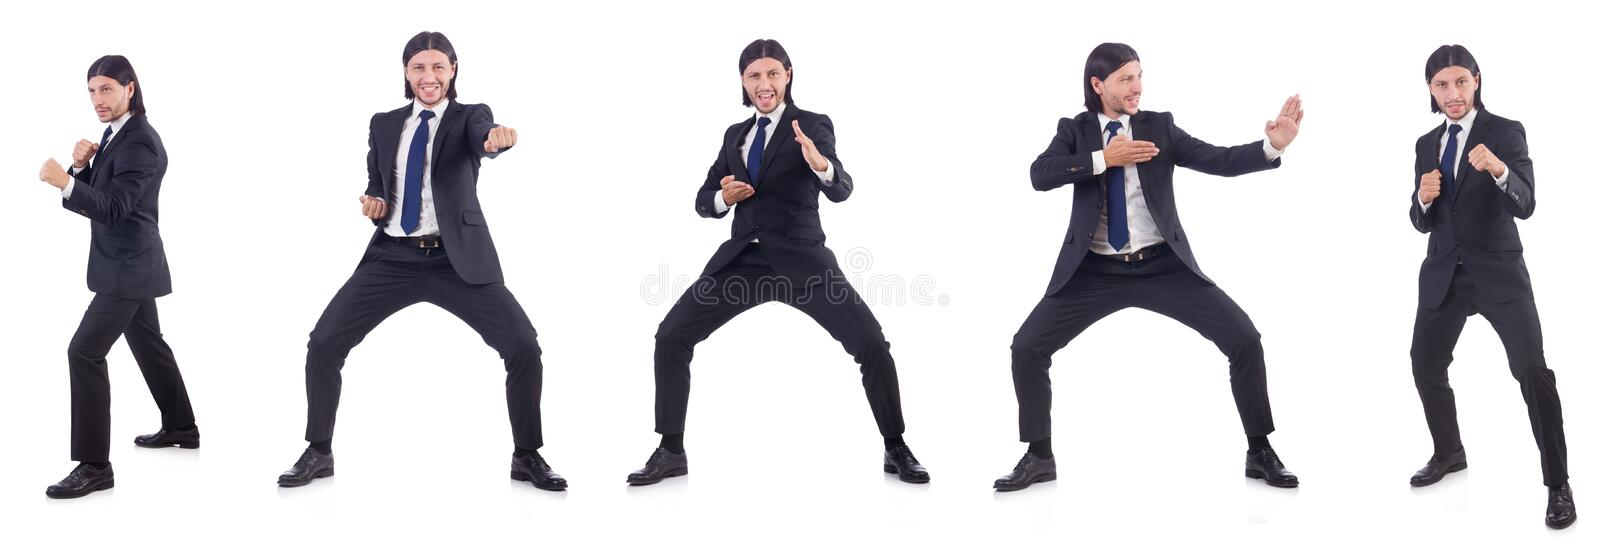 The young businessman isolated on the white background stock photography